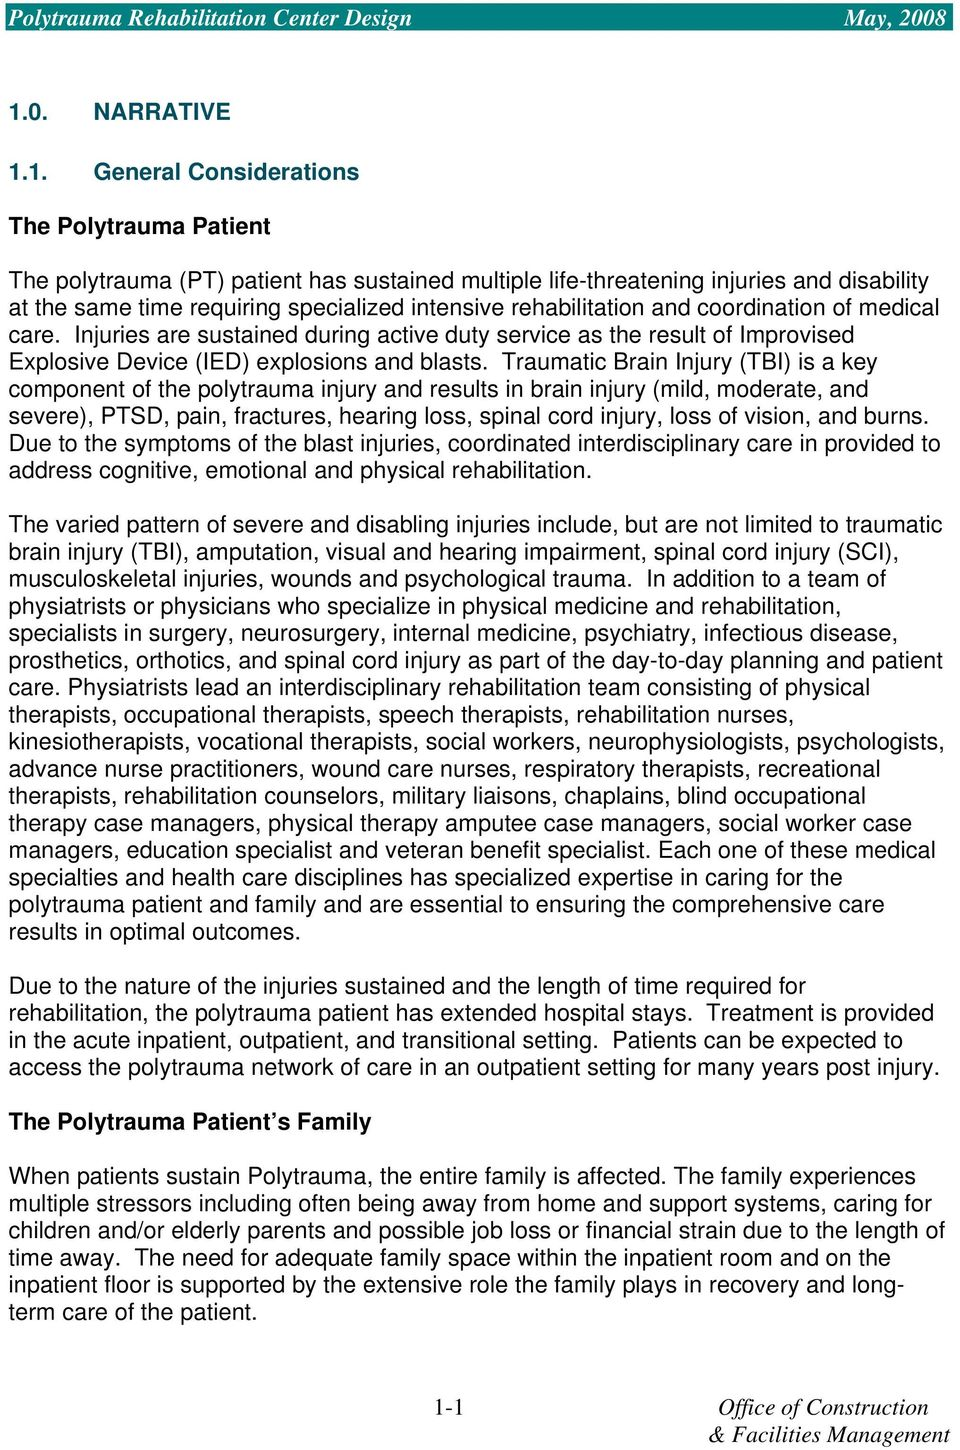 1. General Considerations The Polytrauma Patient The polytrauma (PT) patient has sustained multiple life-threatening injuries and disability at the same time requiring specialized intensive